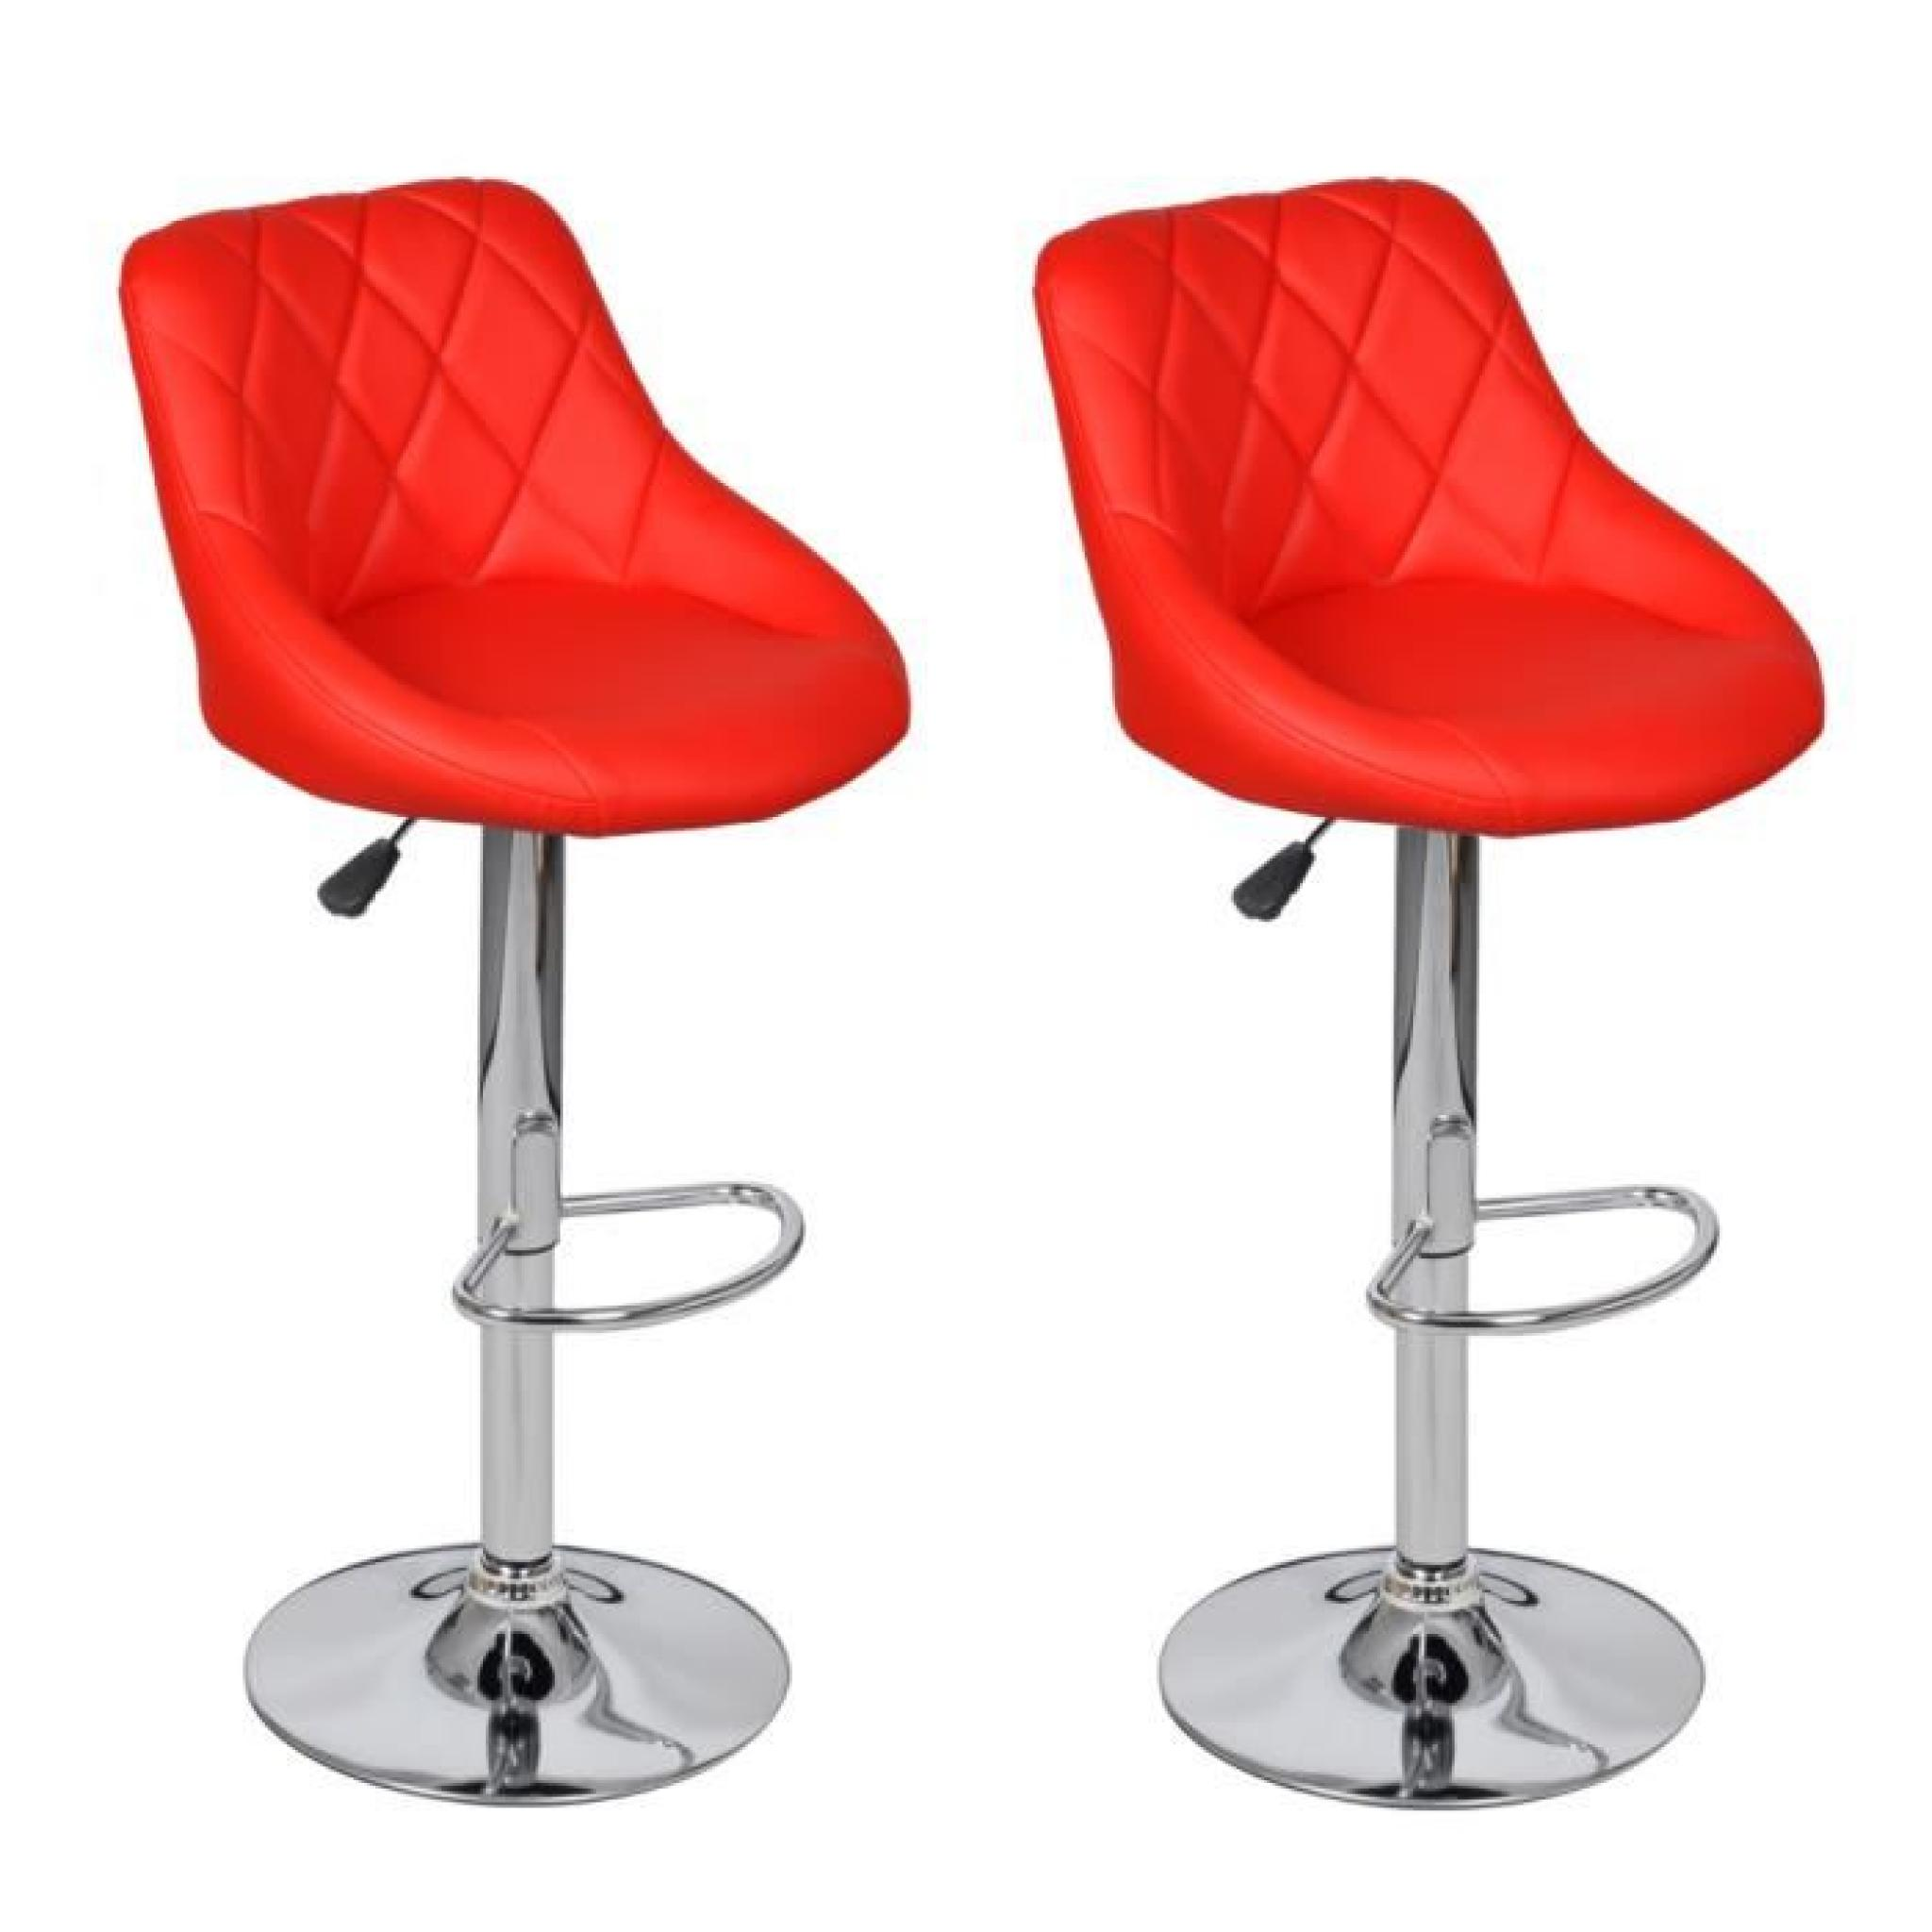 lot de 2 tabourets de bar rouges design moderne achat vente tabouret de bar pas cher couleur. Black Bedroom Furniture Sets. Home Design Ideas